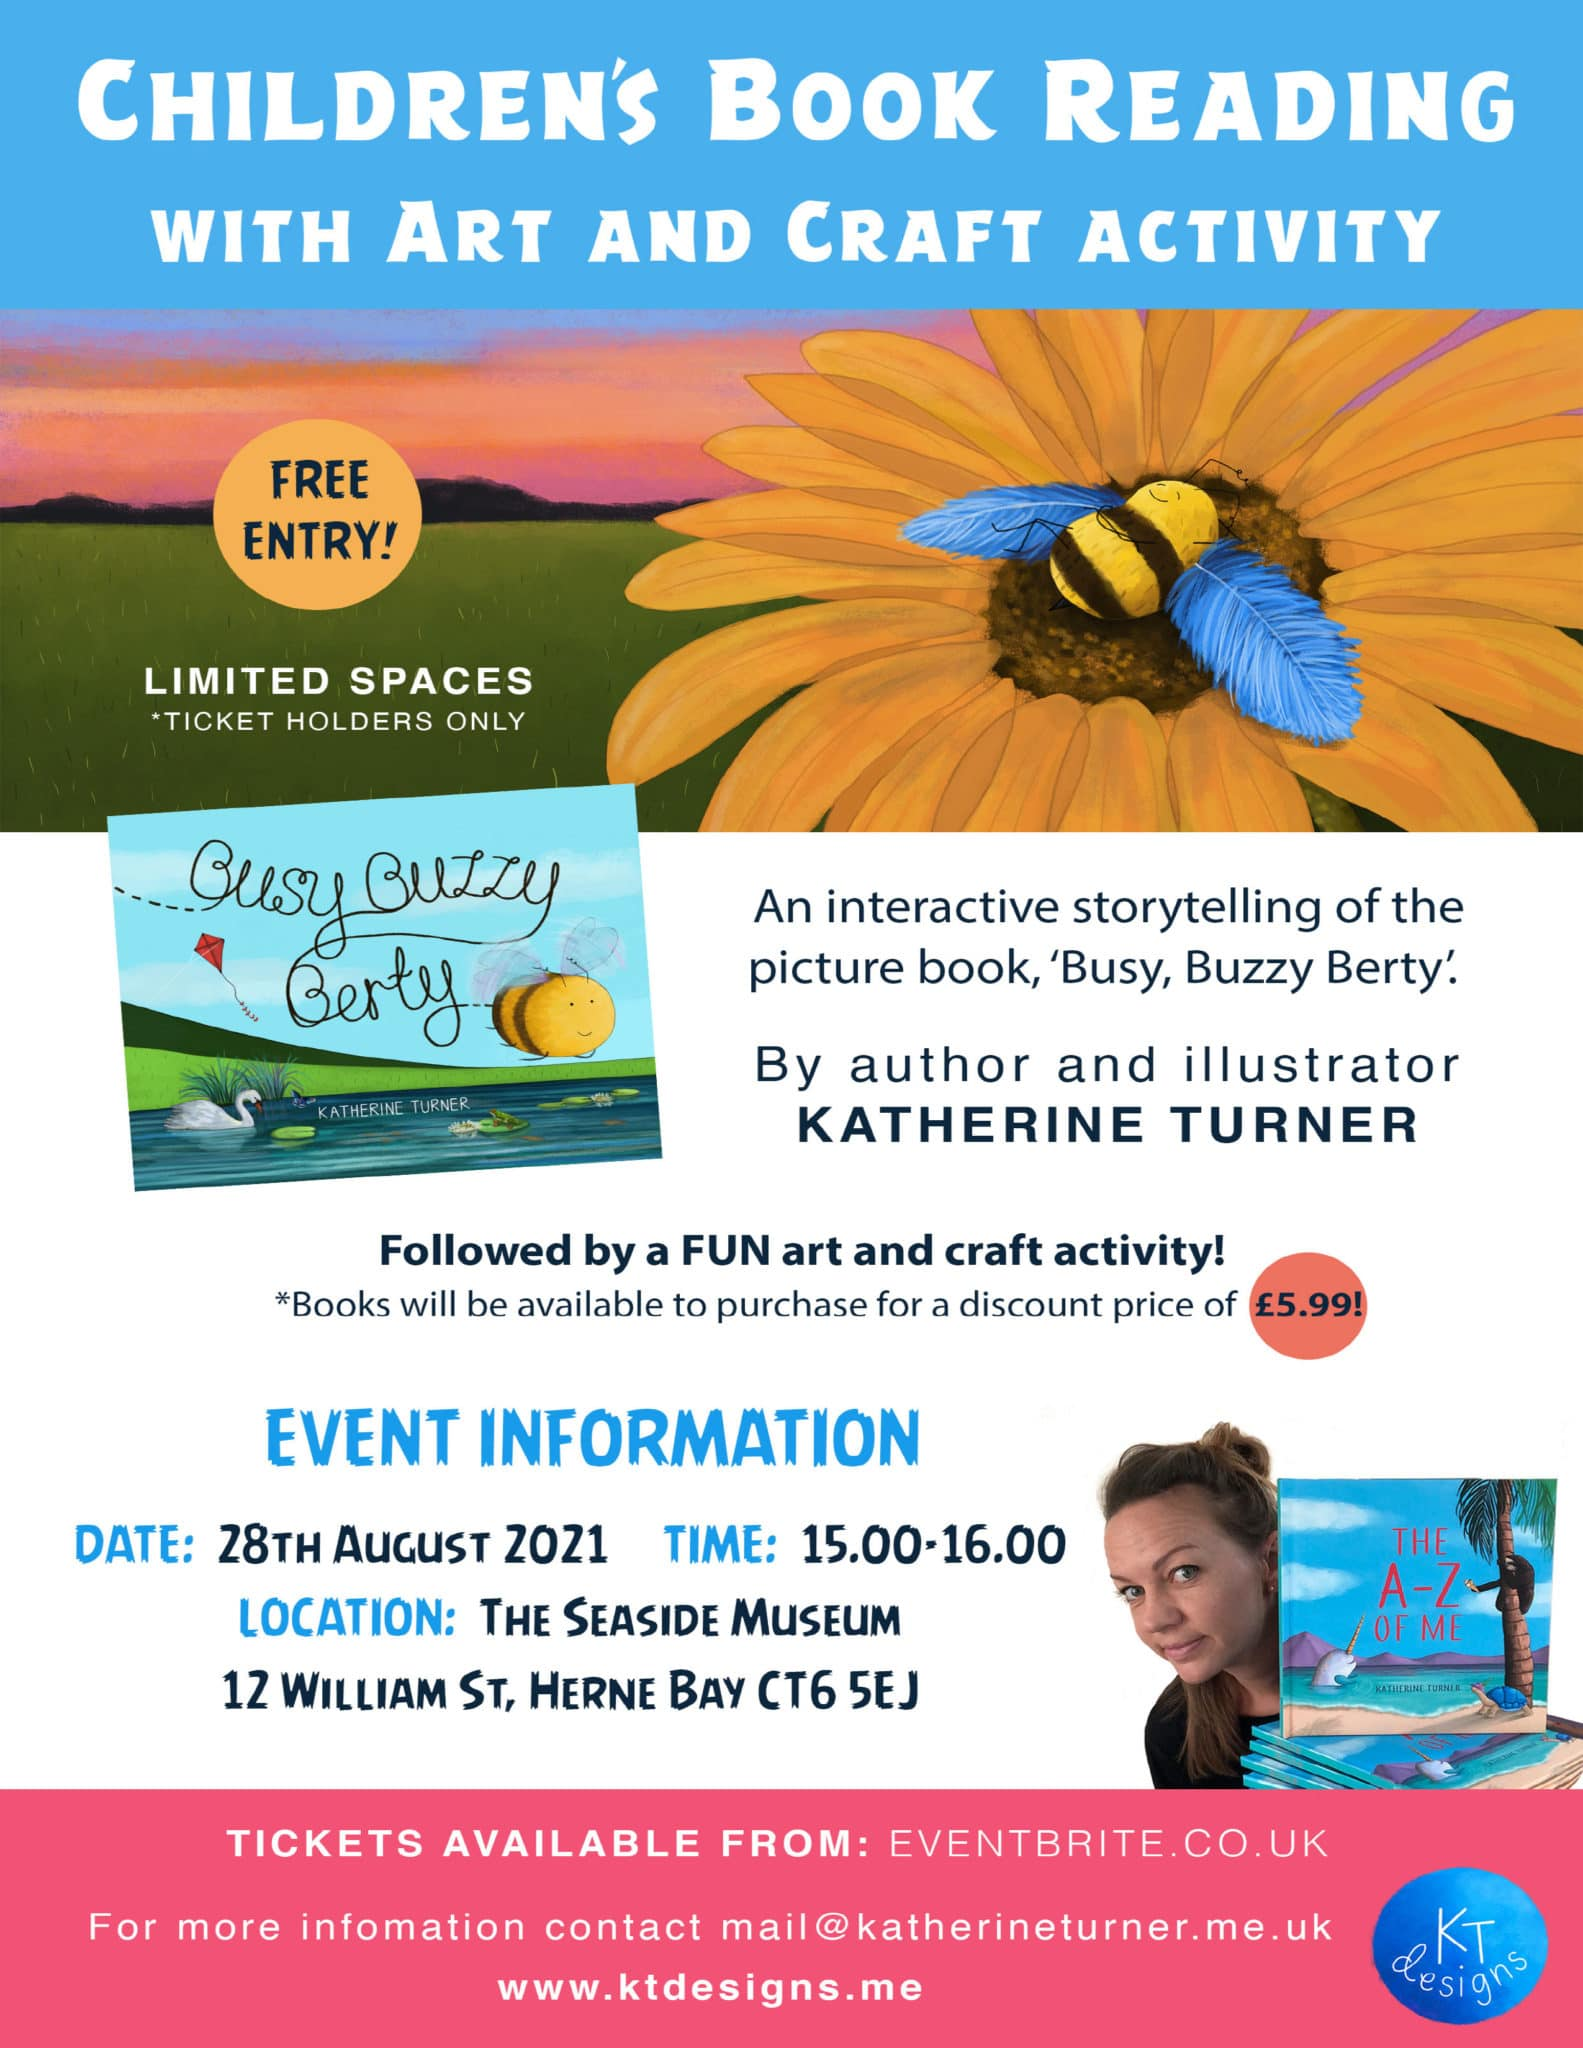 Children's Book Reading with Art and Craft activity